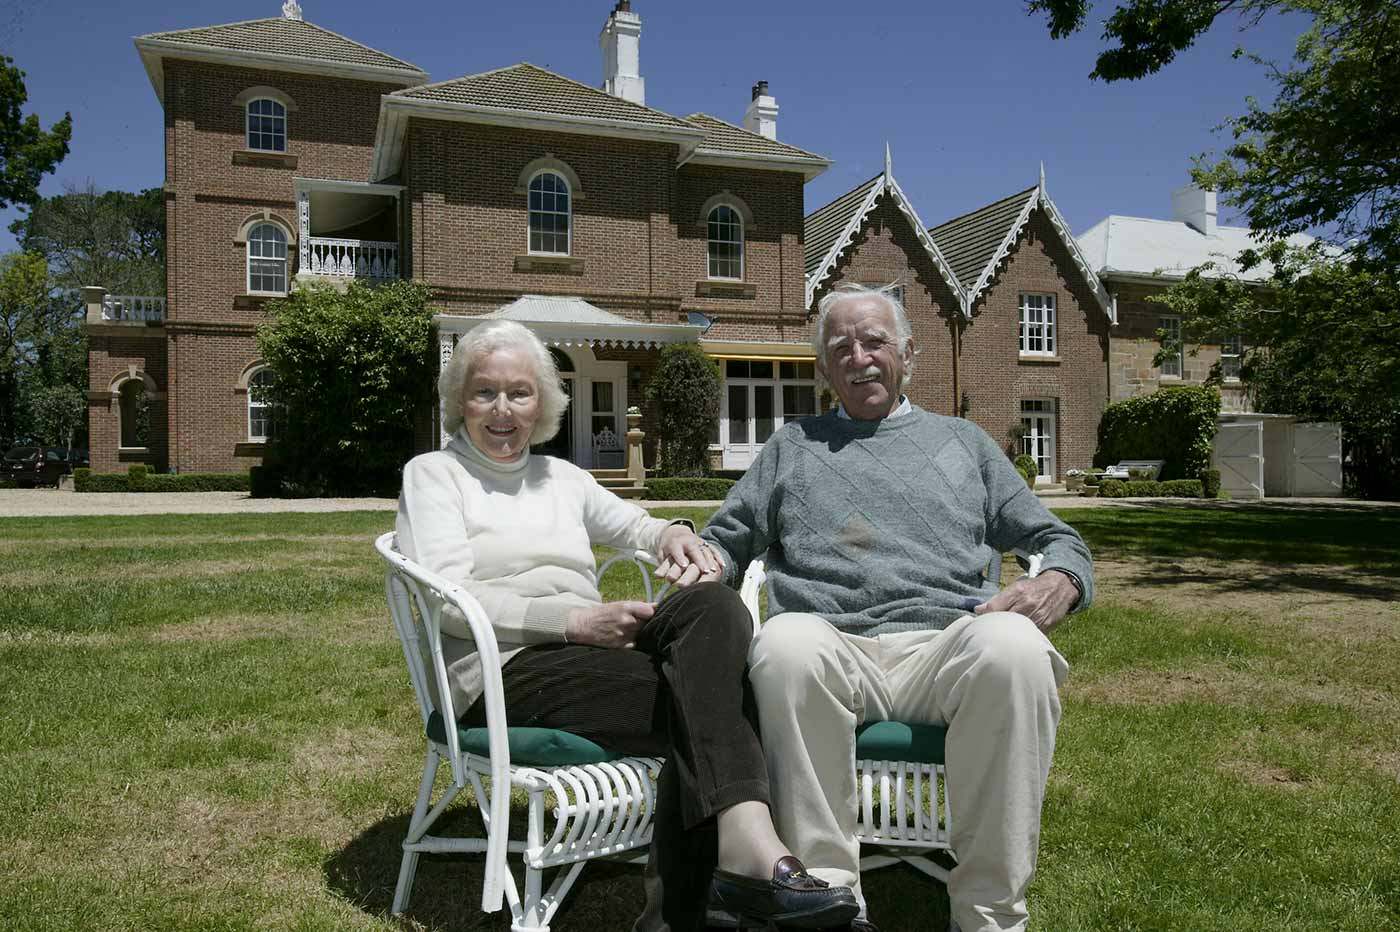 Pamela and Jim Maple-Brown seated on wooden chairs on the grass in front of the main Springfield homestead.